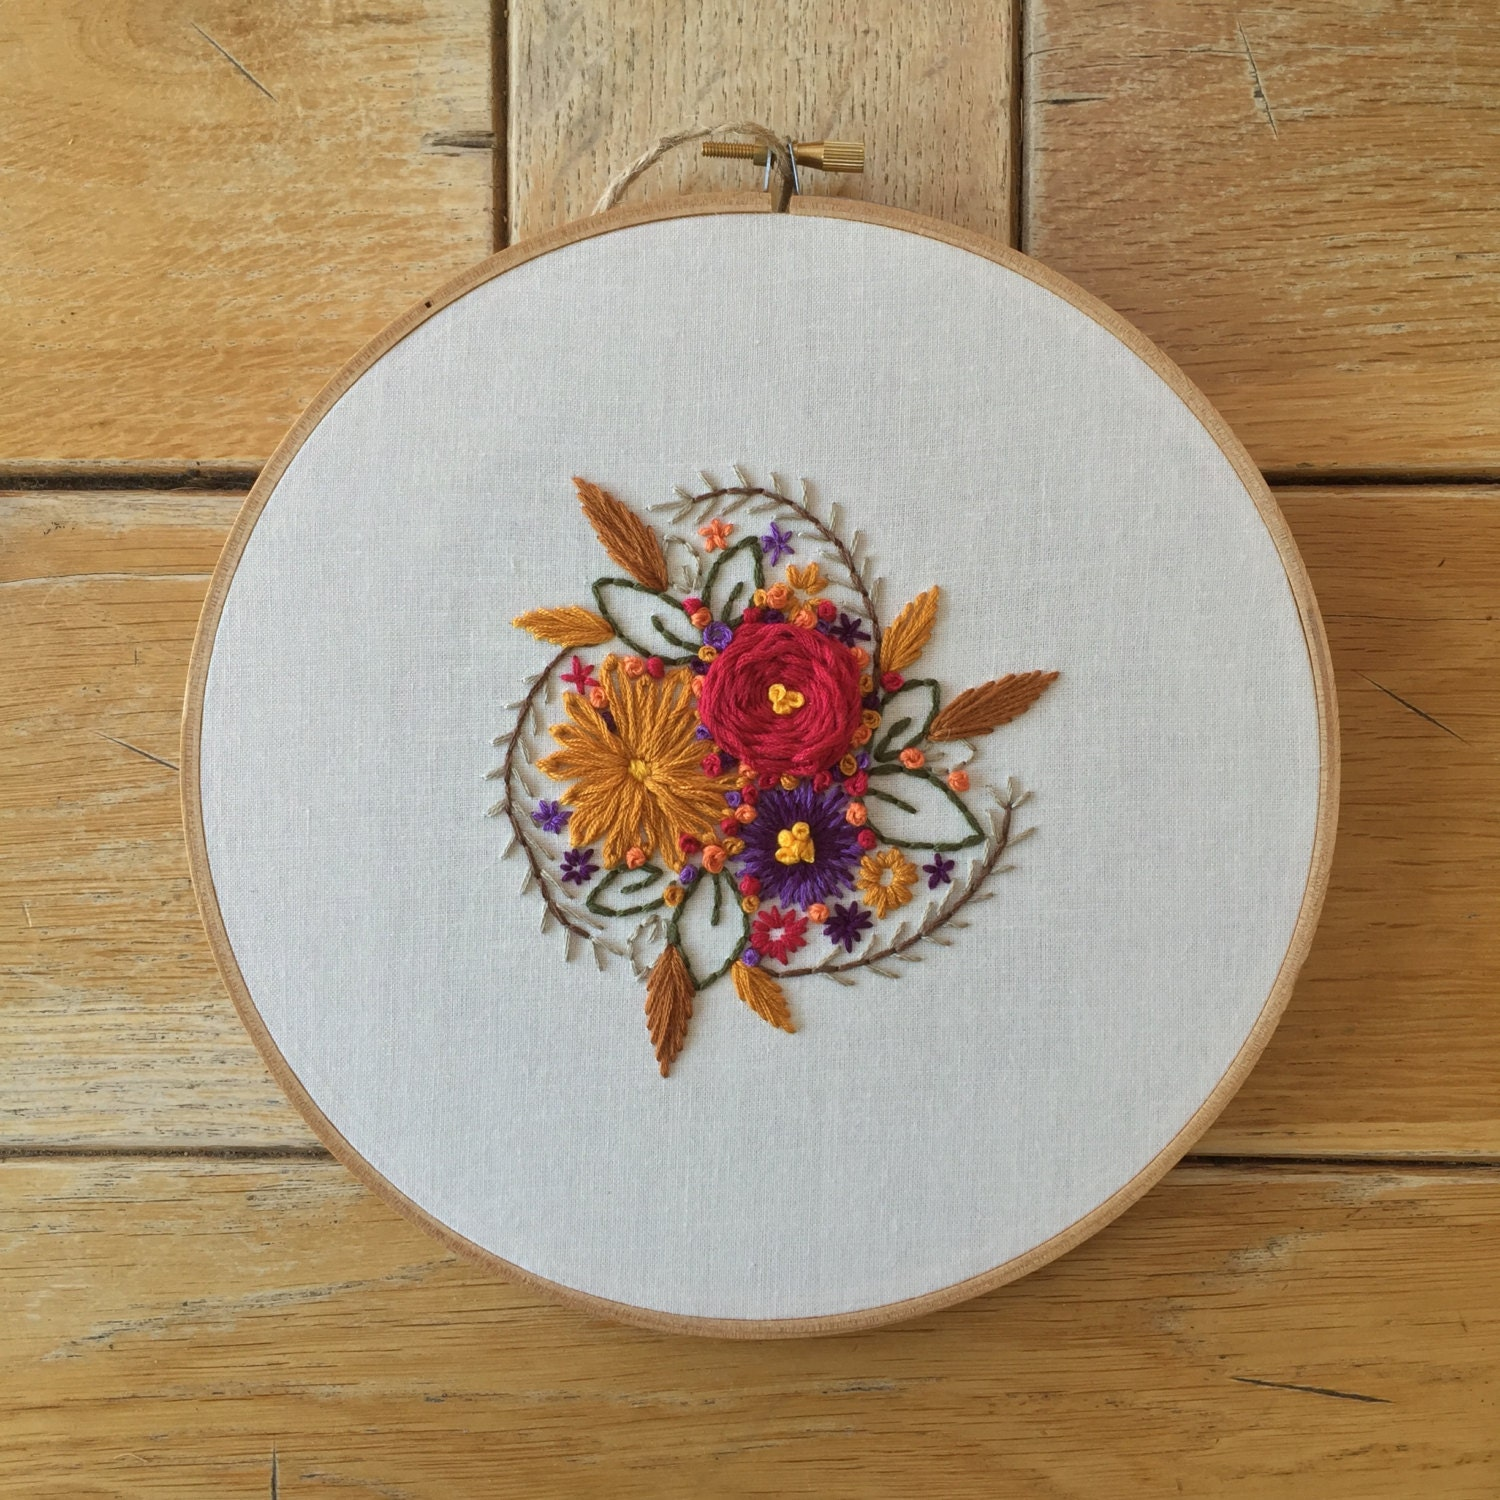 Vintage inspired floral embroidery hoop art gift for mom